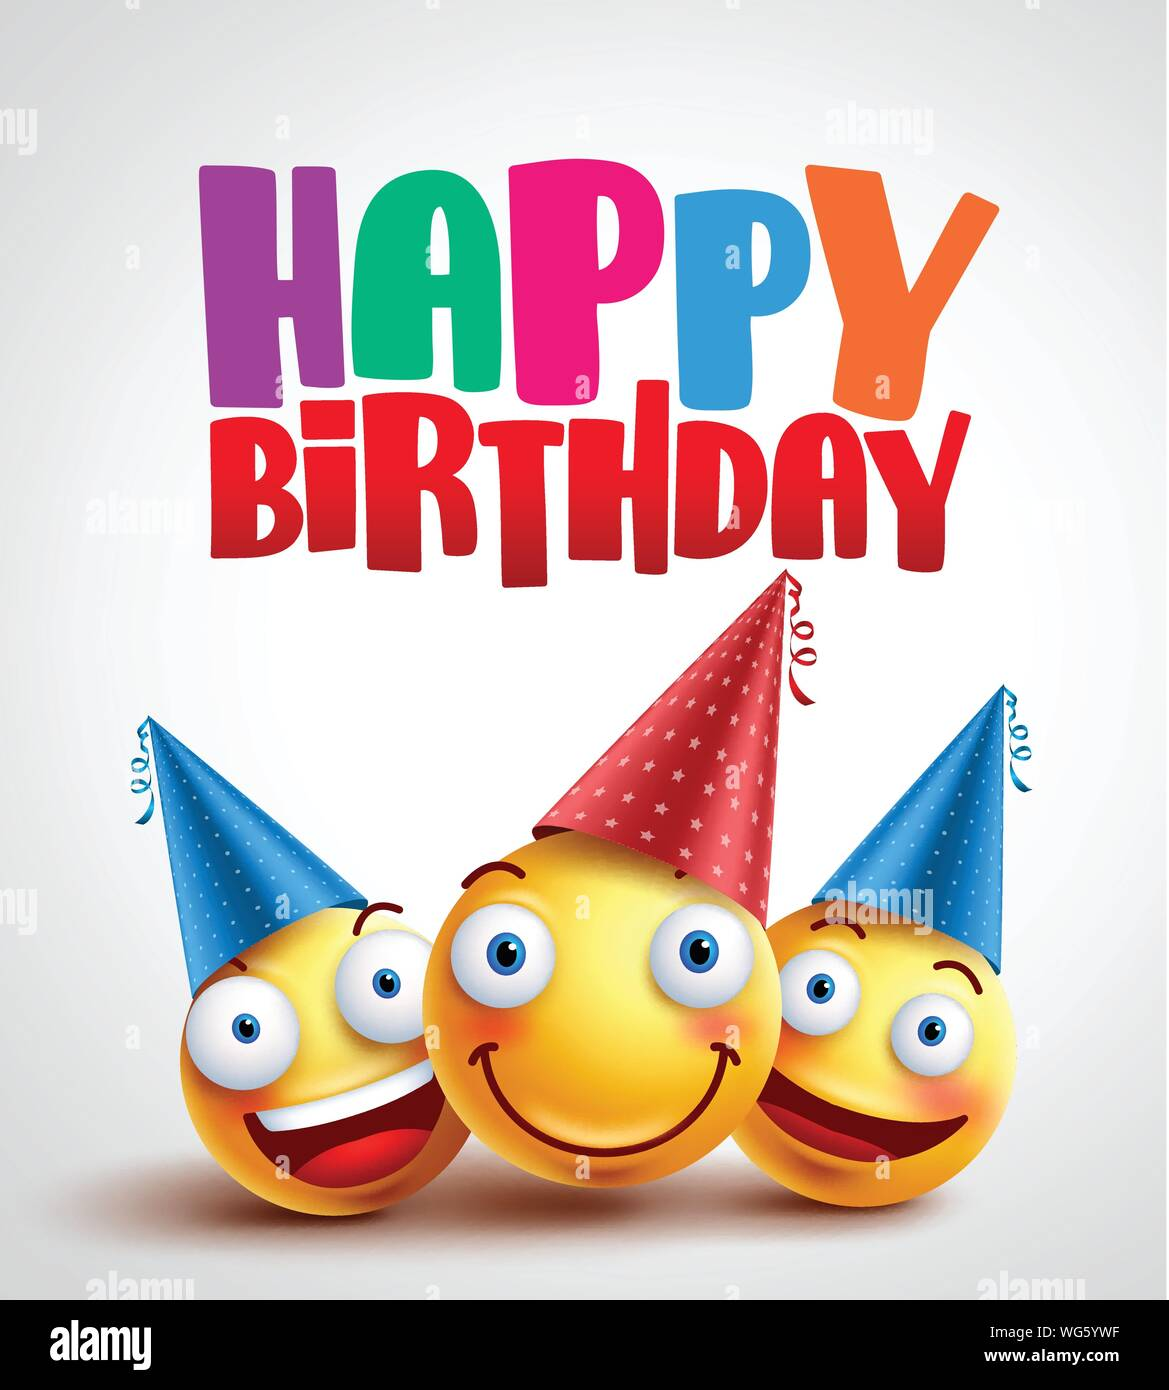 Magnificent Happy Birthday Smileys Celebrant With Happy Friends Funny Vector Funny Birthday Cards Online Alyptdamsfinfo